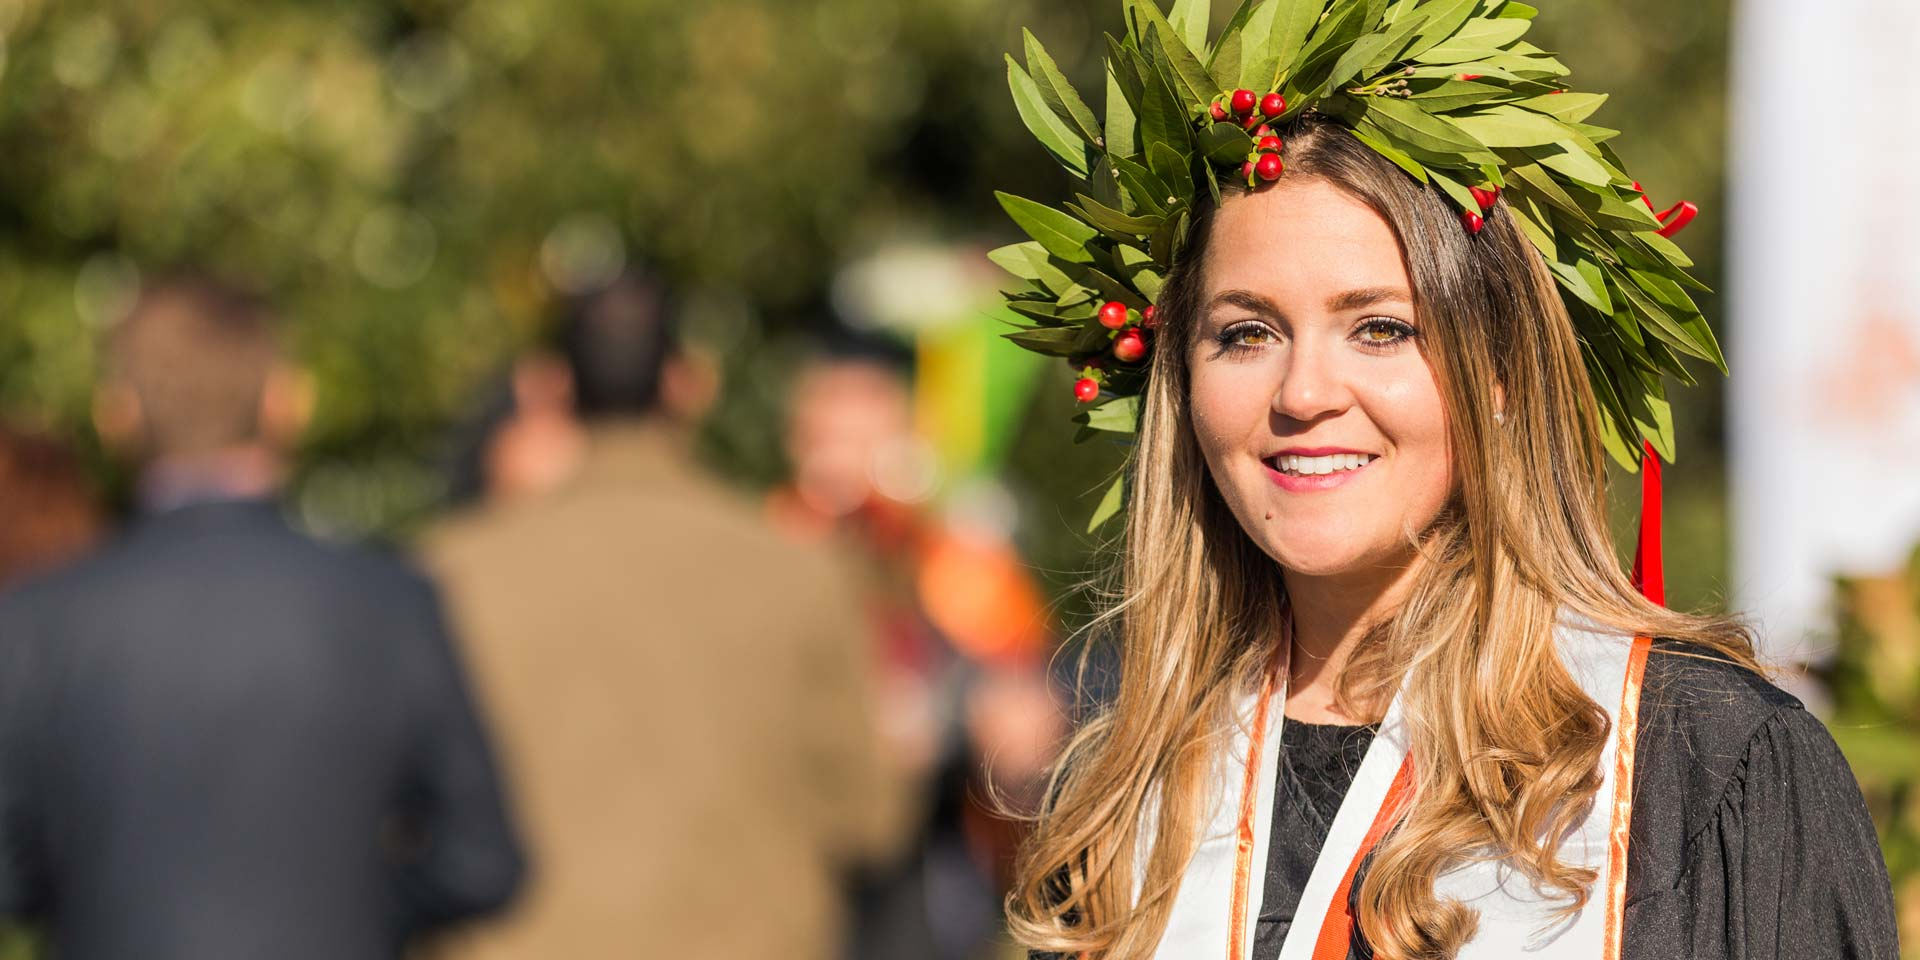 Marketing graduate Chiara Zamboni donned a headpiece with special meaning in her home country of Italy. The crown made of bay leaves and berries represents victory and success.